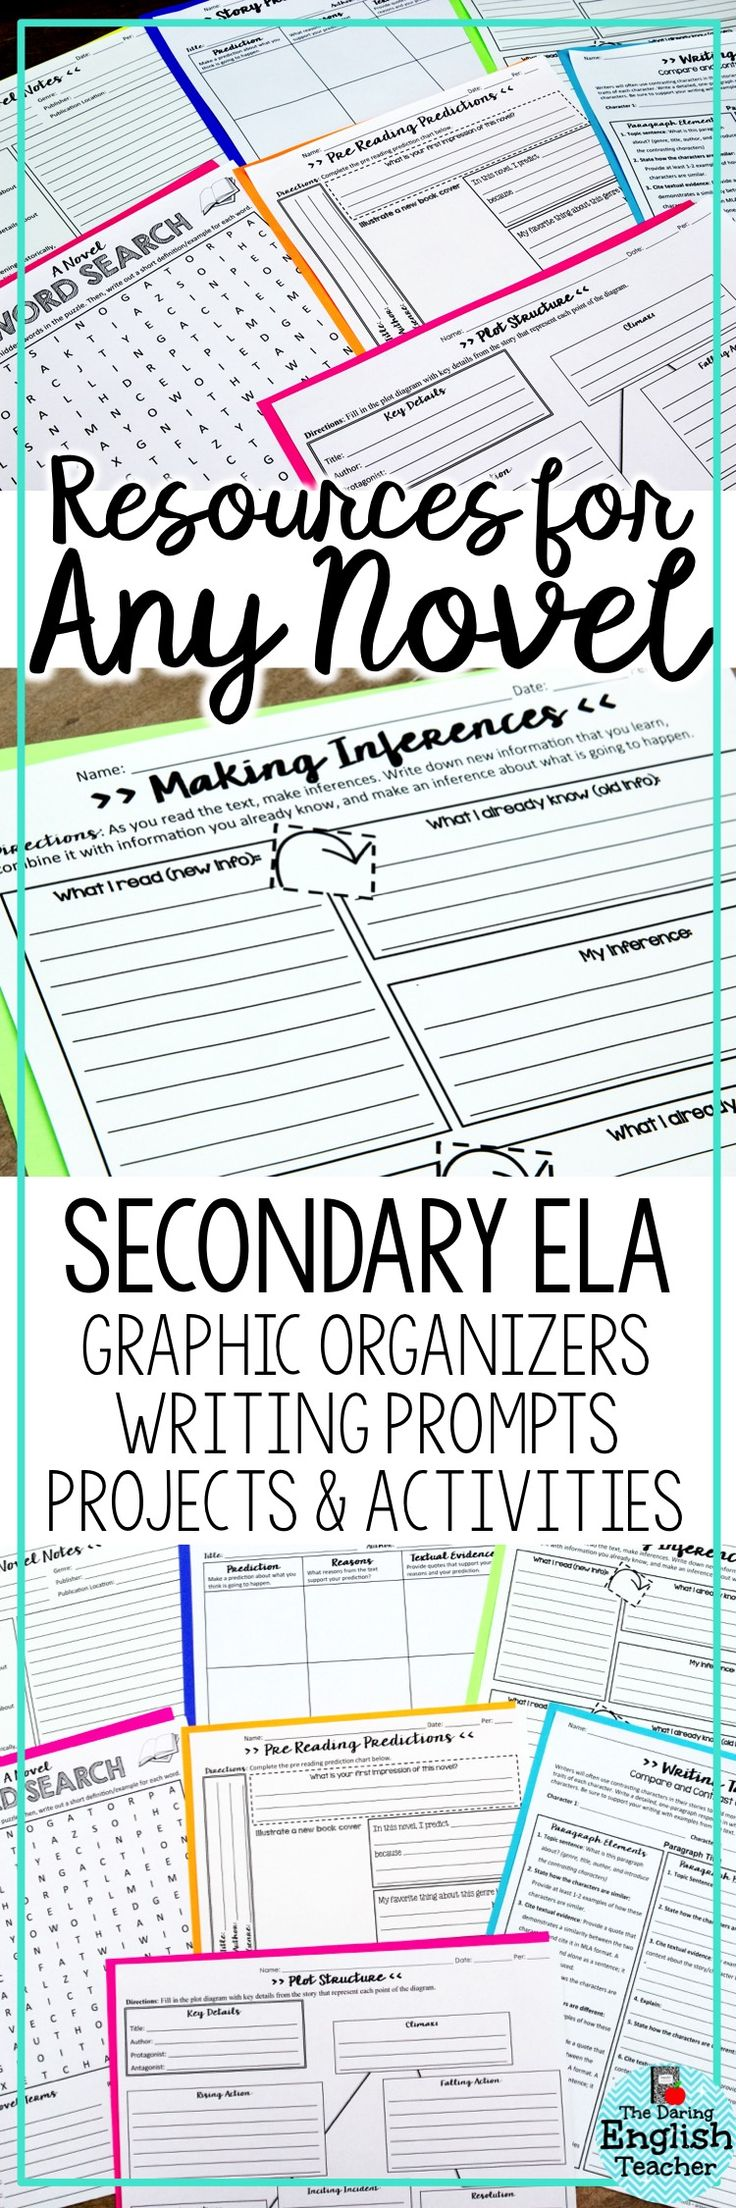 Ideal for any novel, literature circle, or independent reading, this resource pack includes graphic organizers, writing prompts, projects, and activities that can be used with any novel. Ideal for middle school and high school English language arts.